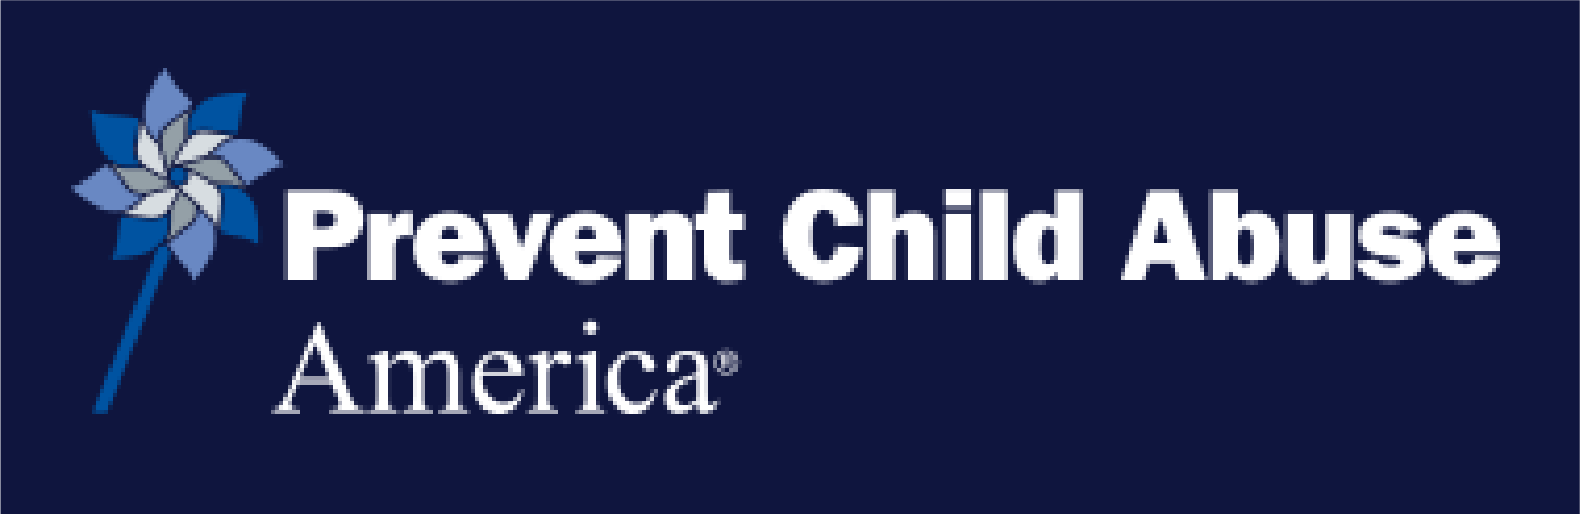 """- As an organization that works with children, our staff is in a position to help prevent child abuse. Can you recognize common signs of abuse? Take a moment to learn how to recognize common symptoms of abuse. You should report suspected child abuse if a child reports abuse to you or if you have """"reasonable cause, suspicion or belief based on your observations."""" It's that simple. All we ask is that you let us know if you have concerns, and management will take it from there. Learn how to recognize child abuse."""